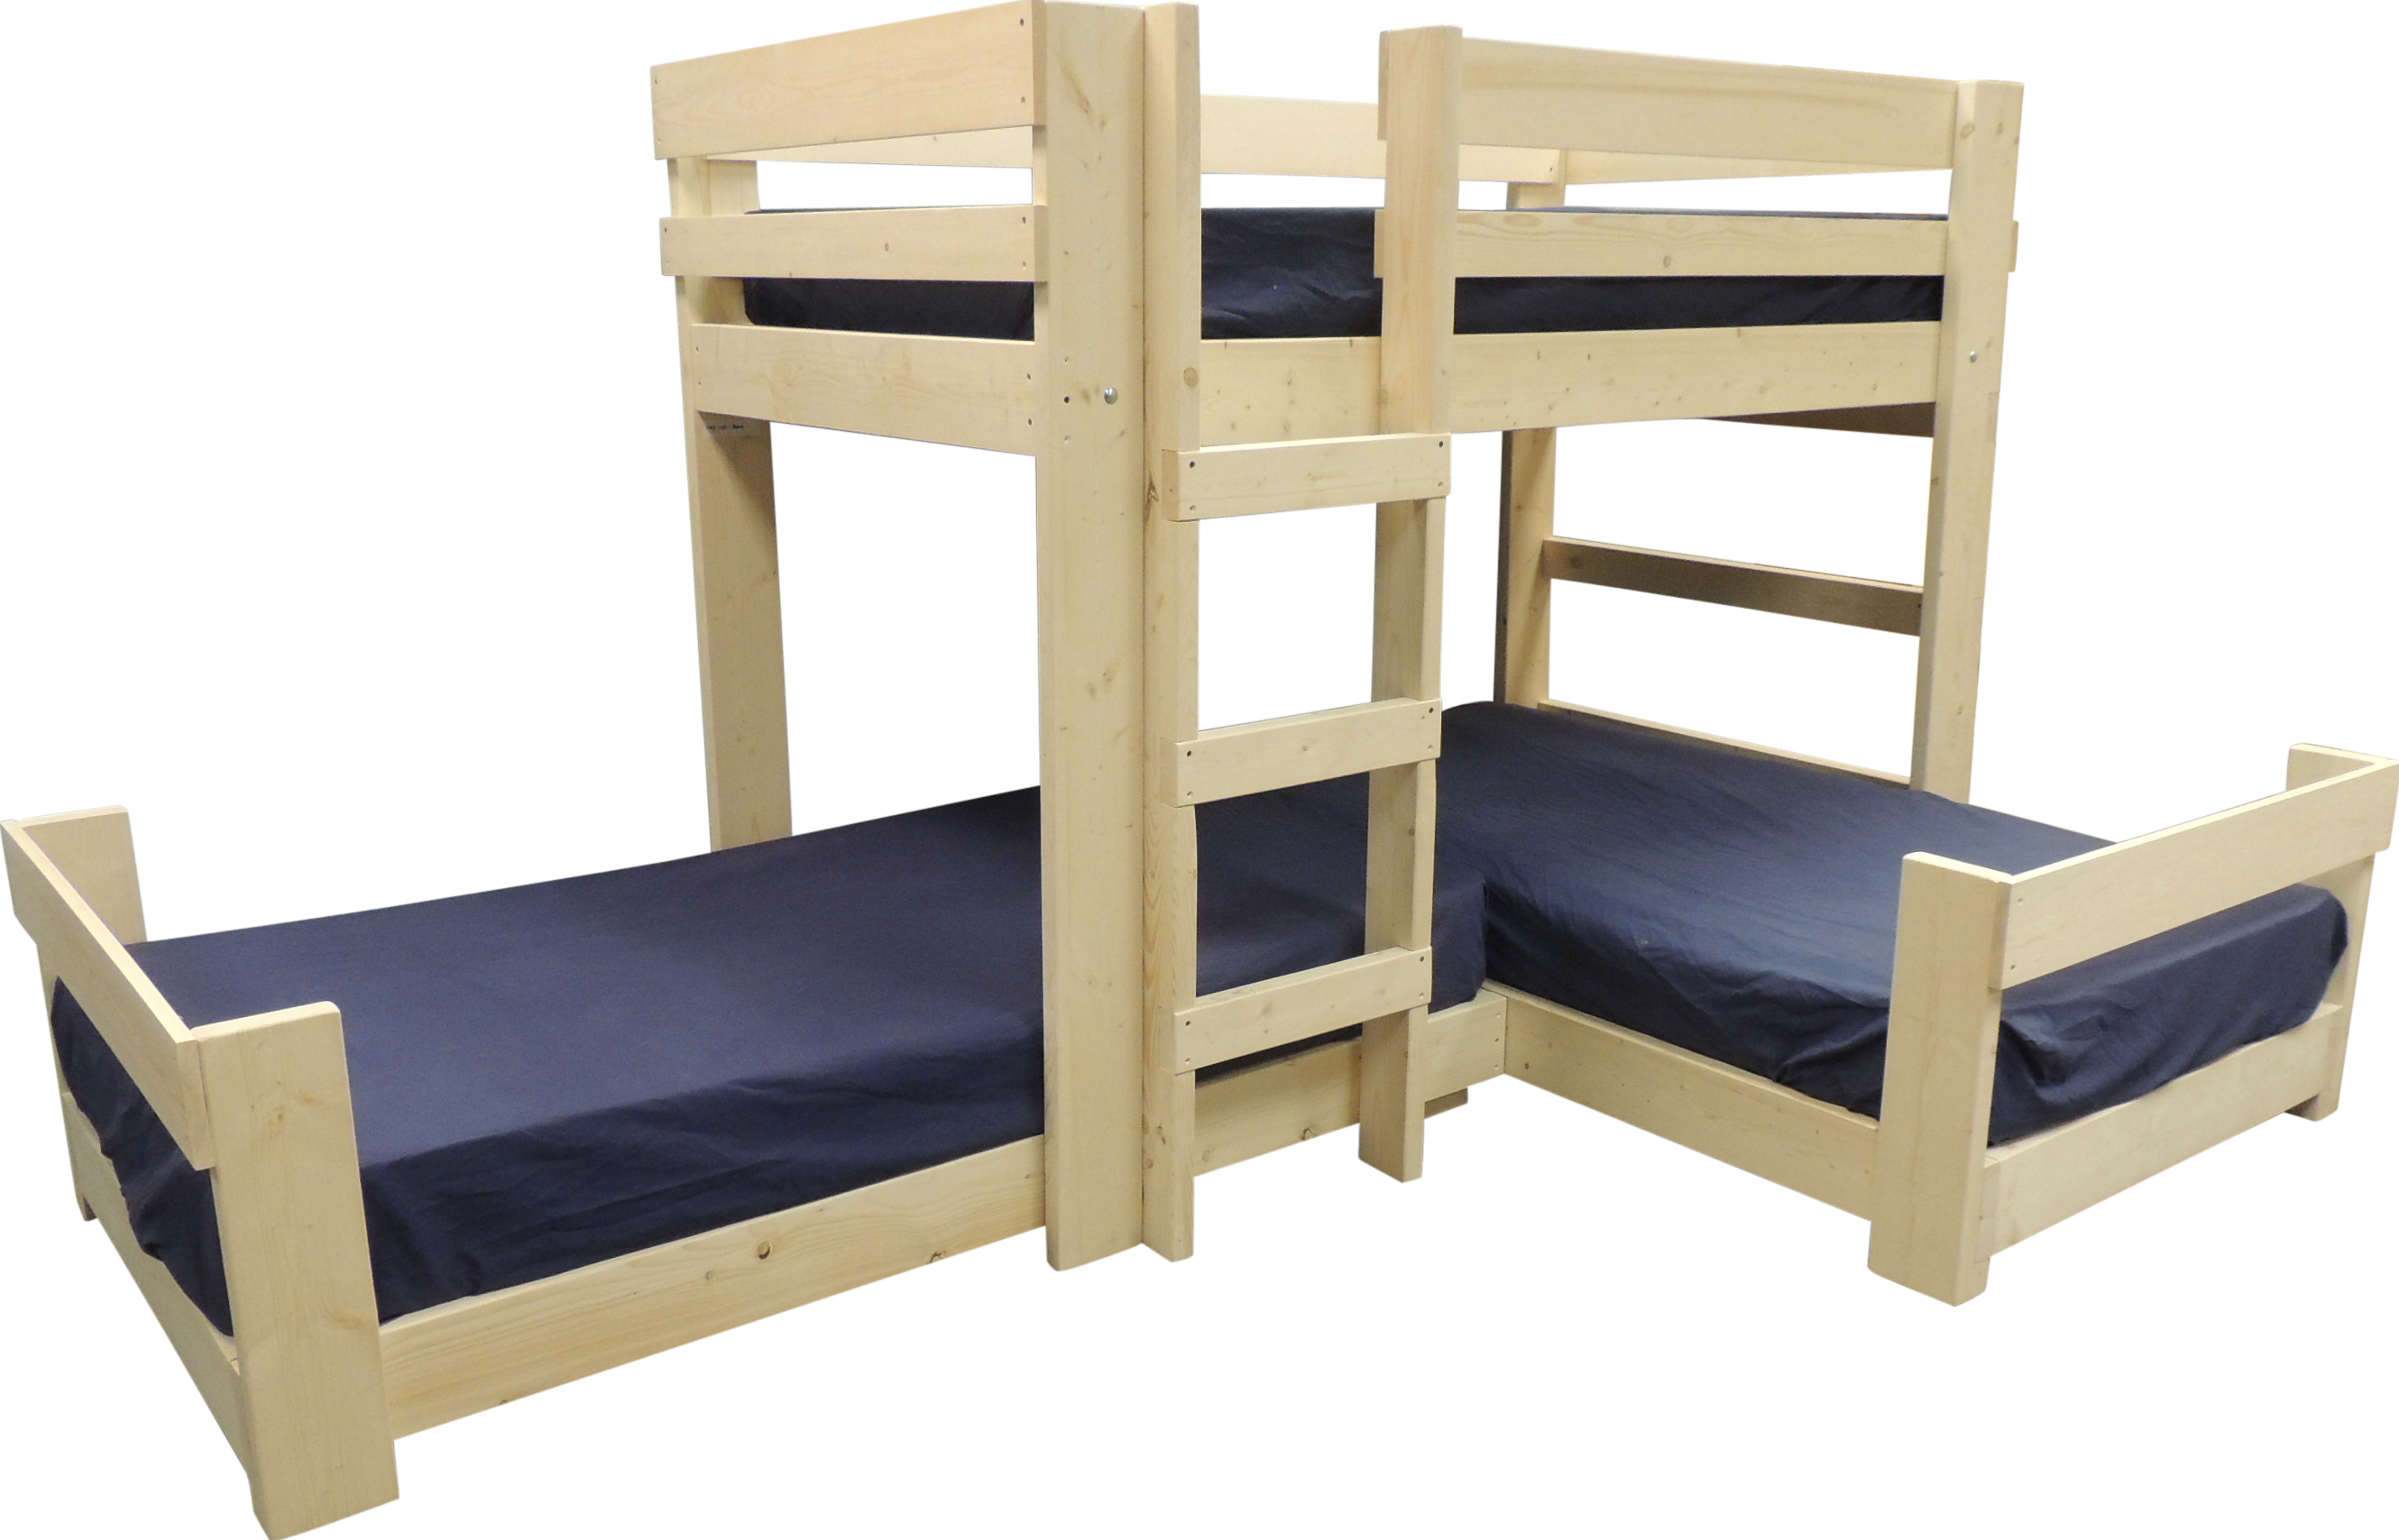 Pin On Triple Beds For A Small Space Low bunk beds for low ceilings